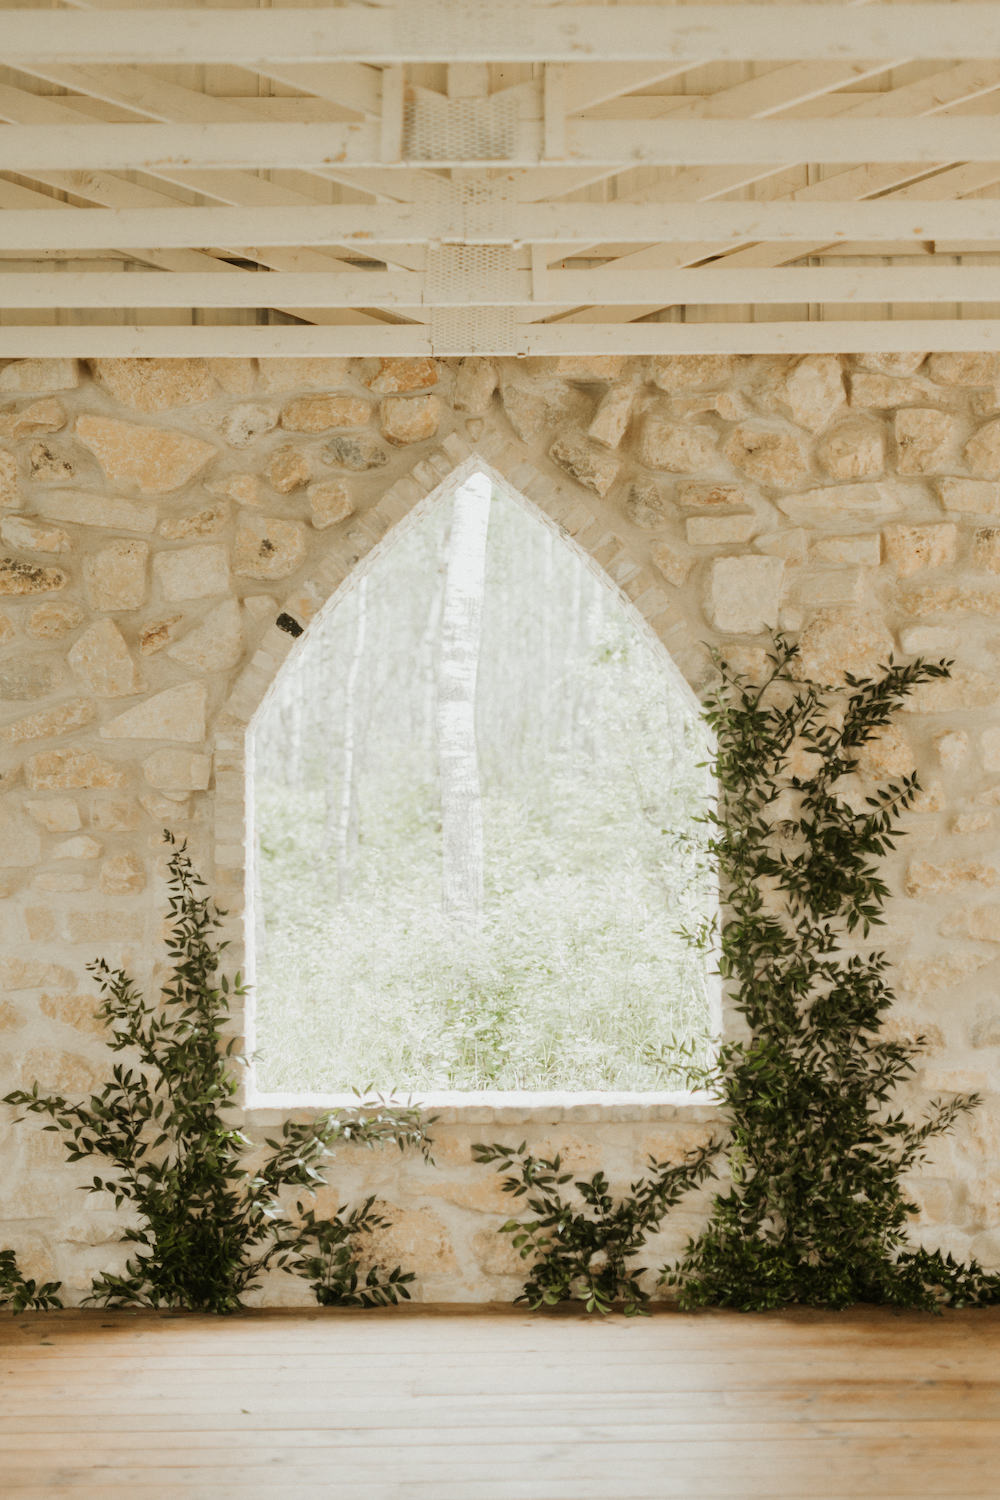 Wild Greenery Wall for Ceremony Backdrop - Stone House Creative